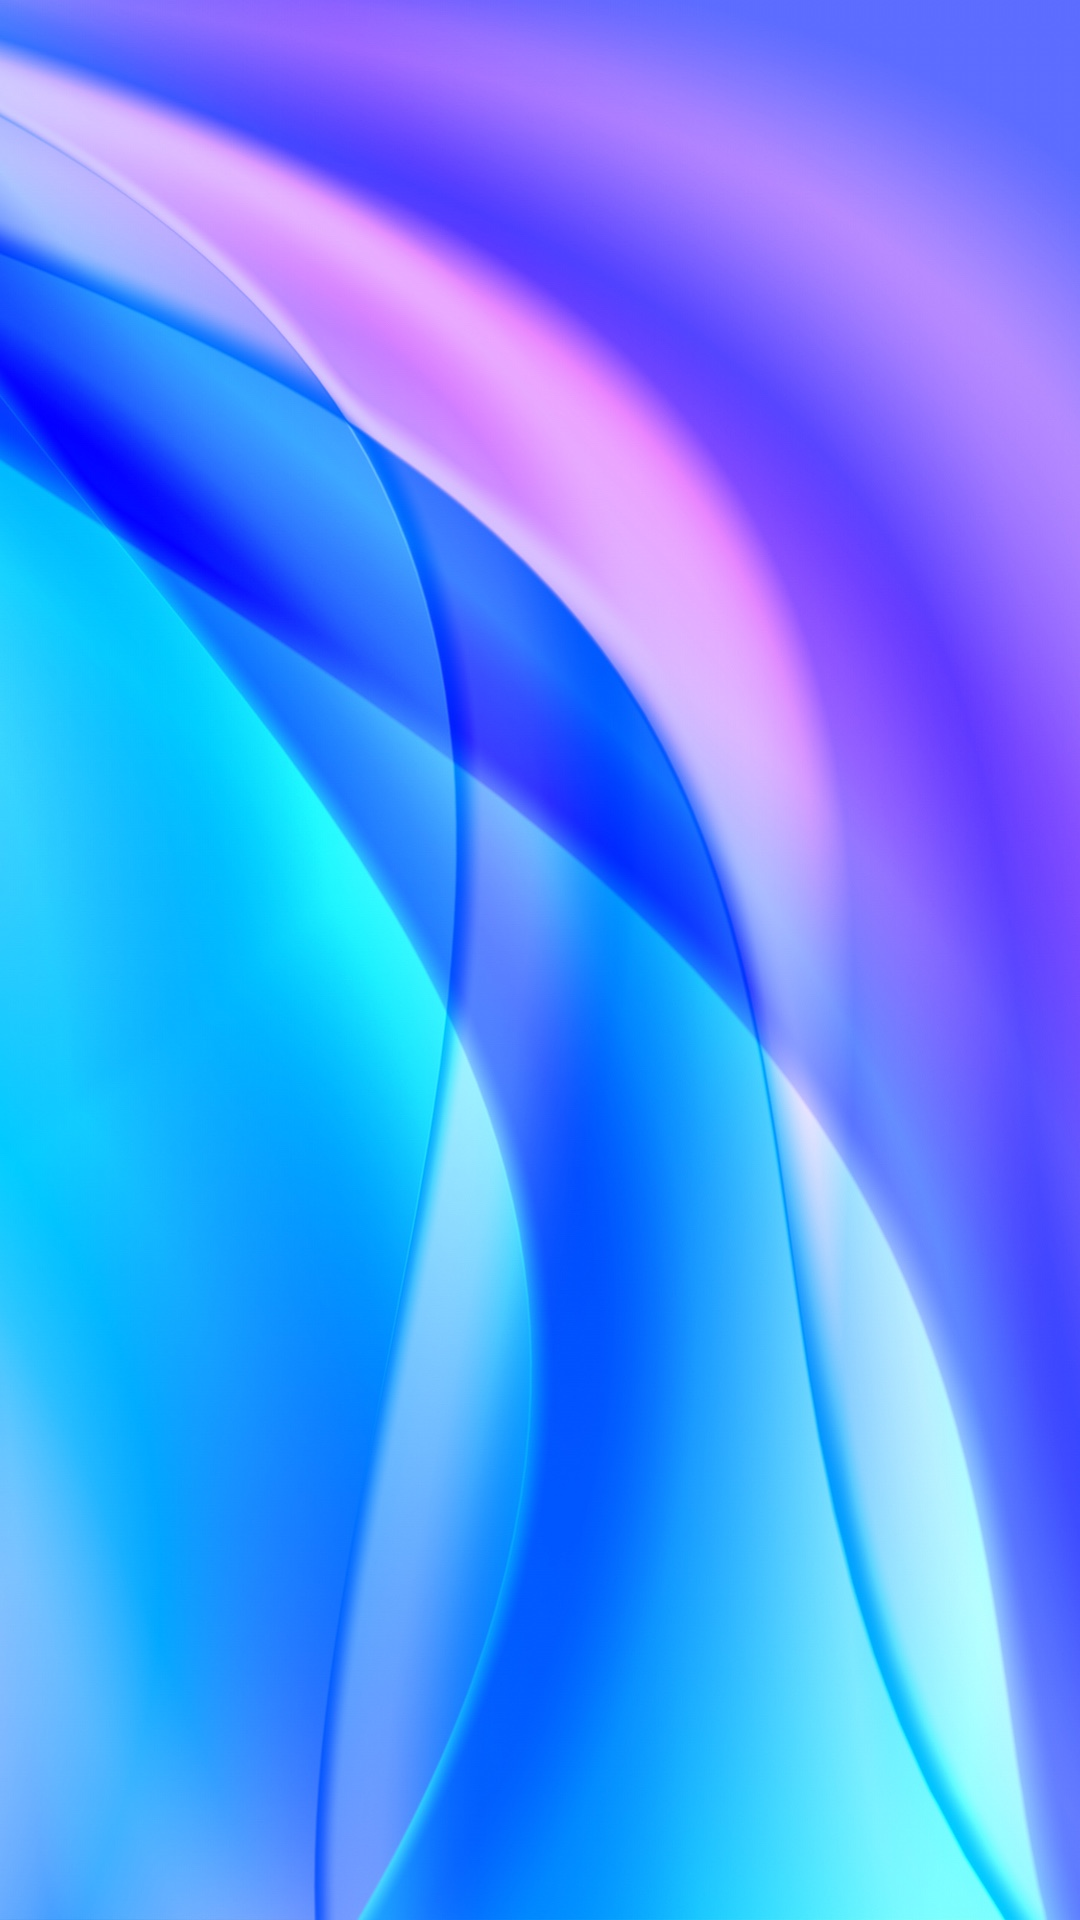 Wallpapers Huawei Ascend Mate 7 - Pack 003